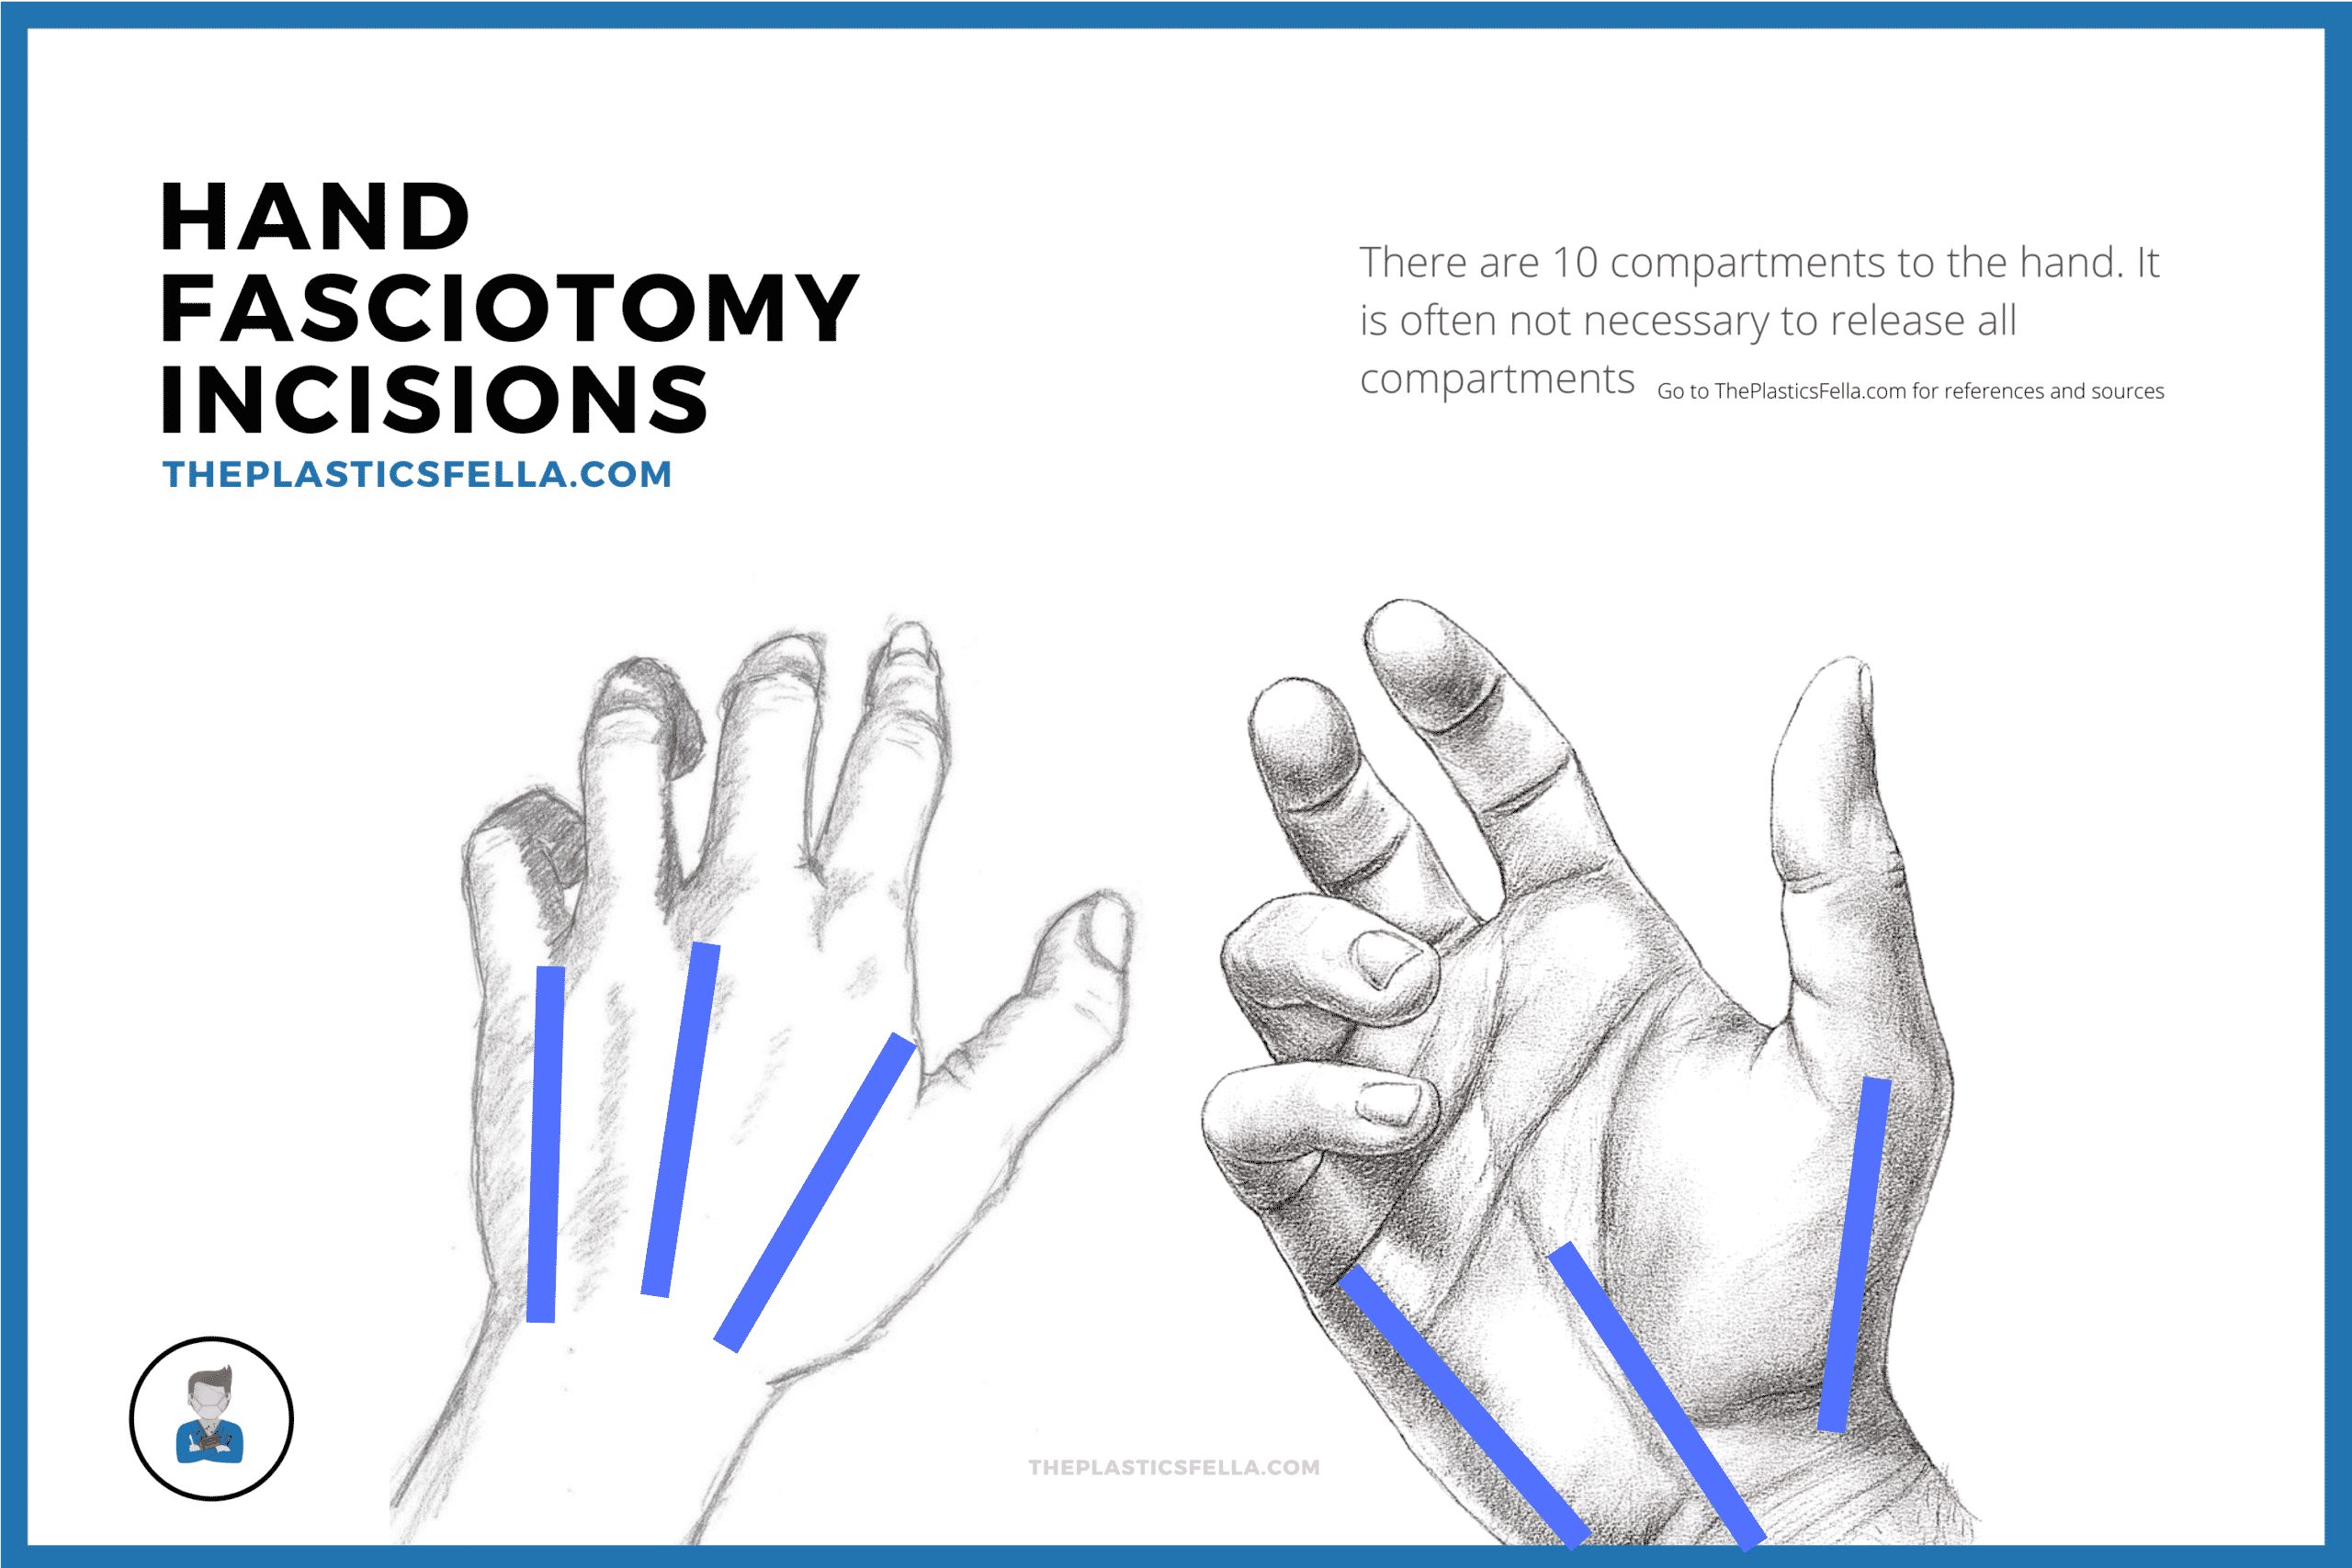 Surgical Incisions to decompress compartment syndrome of the hand